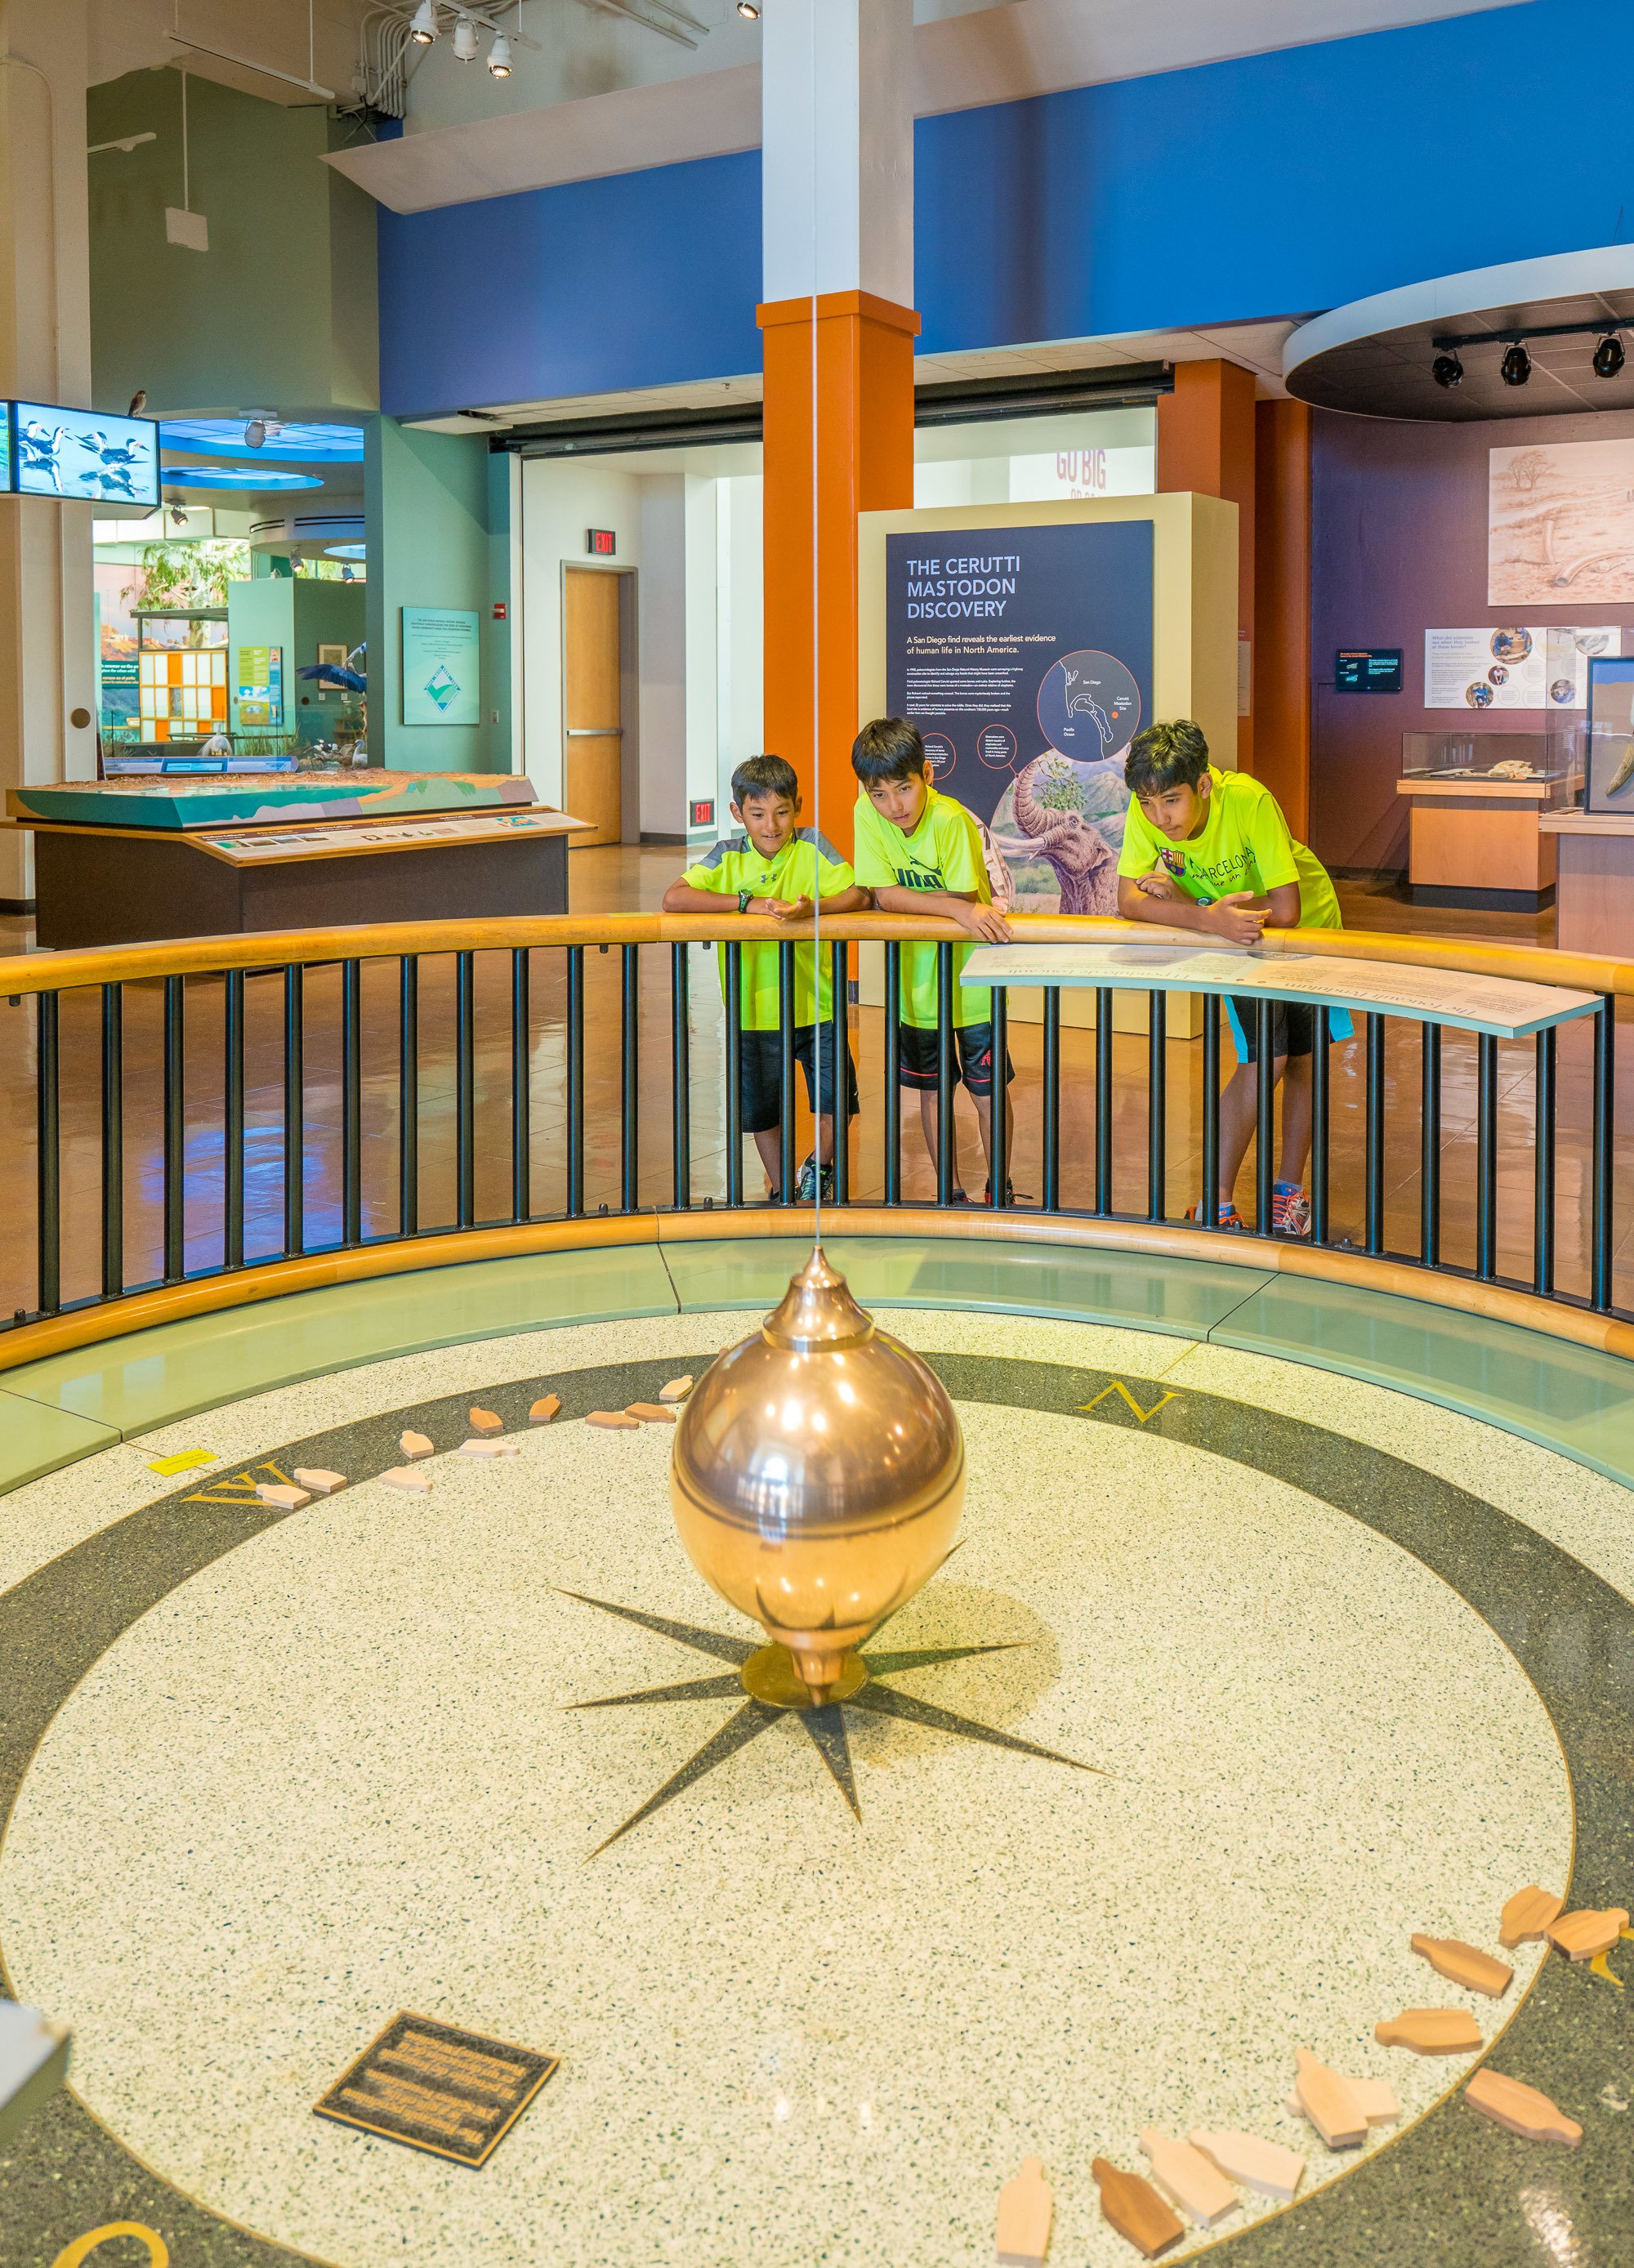 The Focault Pendulum at the San Diego Natural History Museum demonstrates the Earth's rotation.